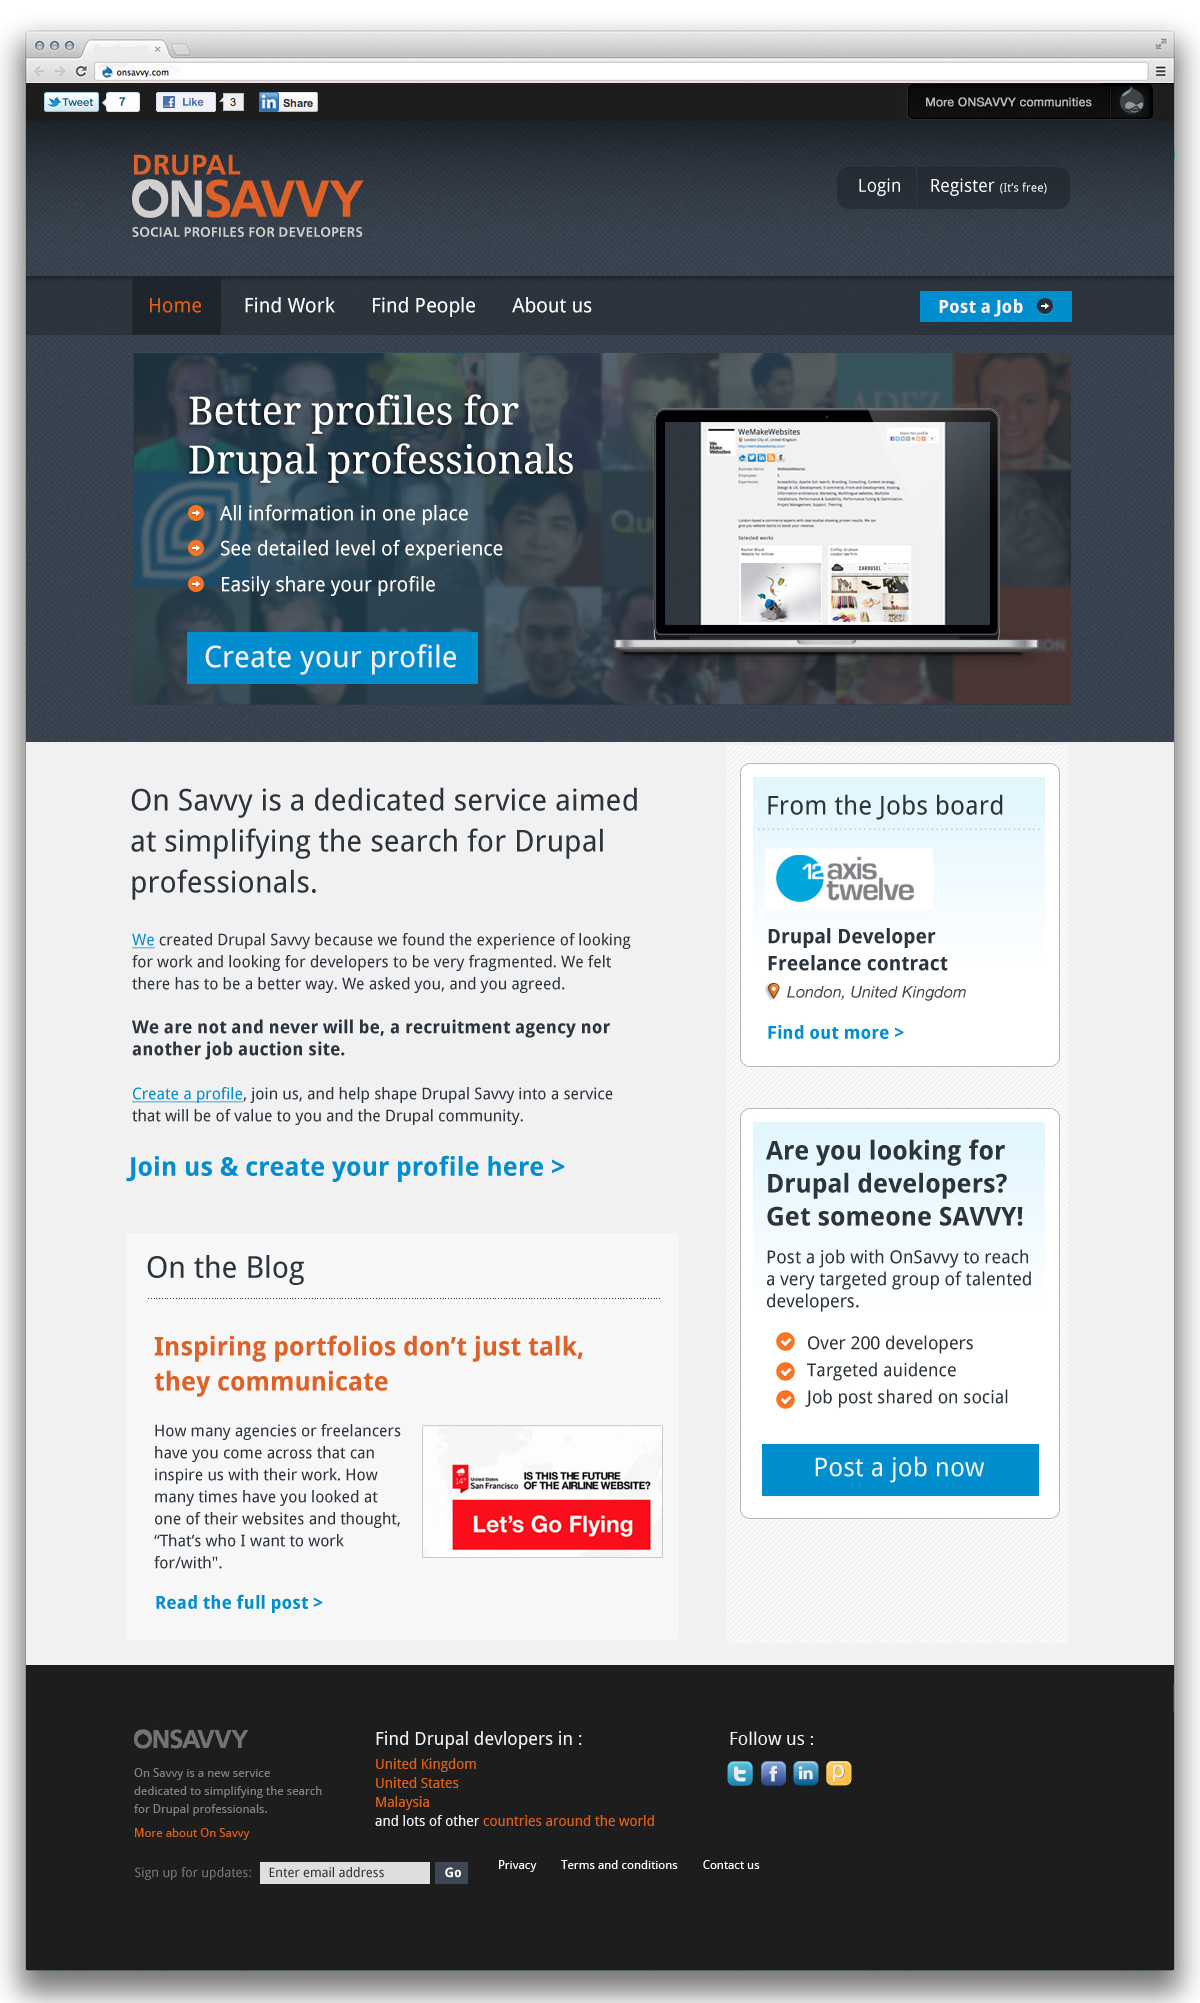 Drupal on Savvy home page